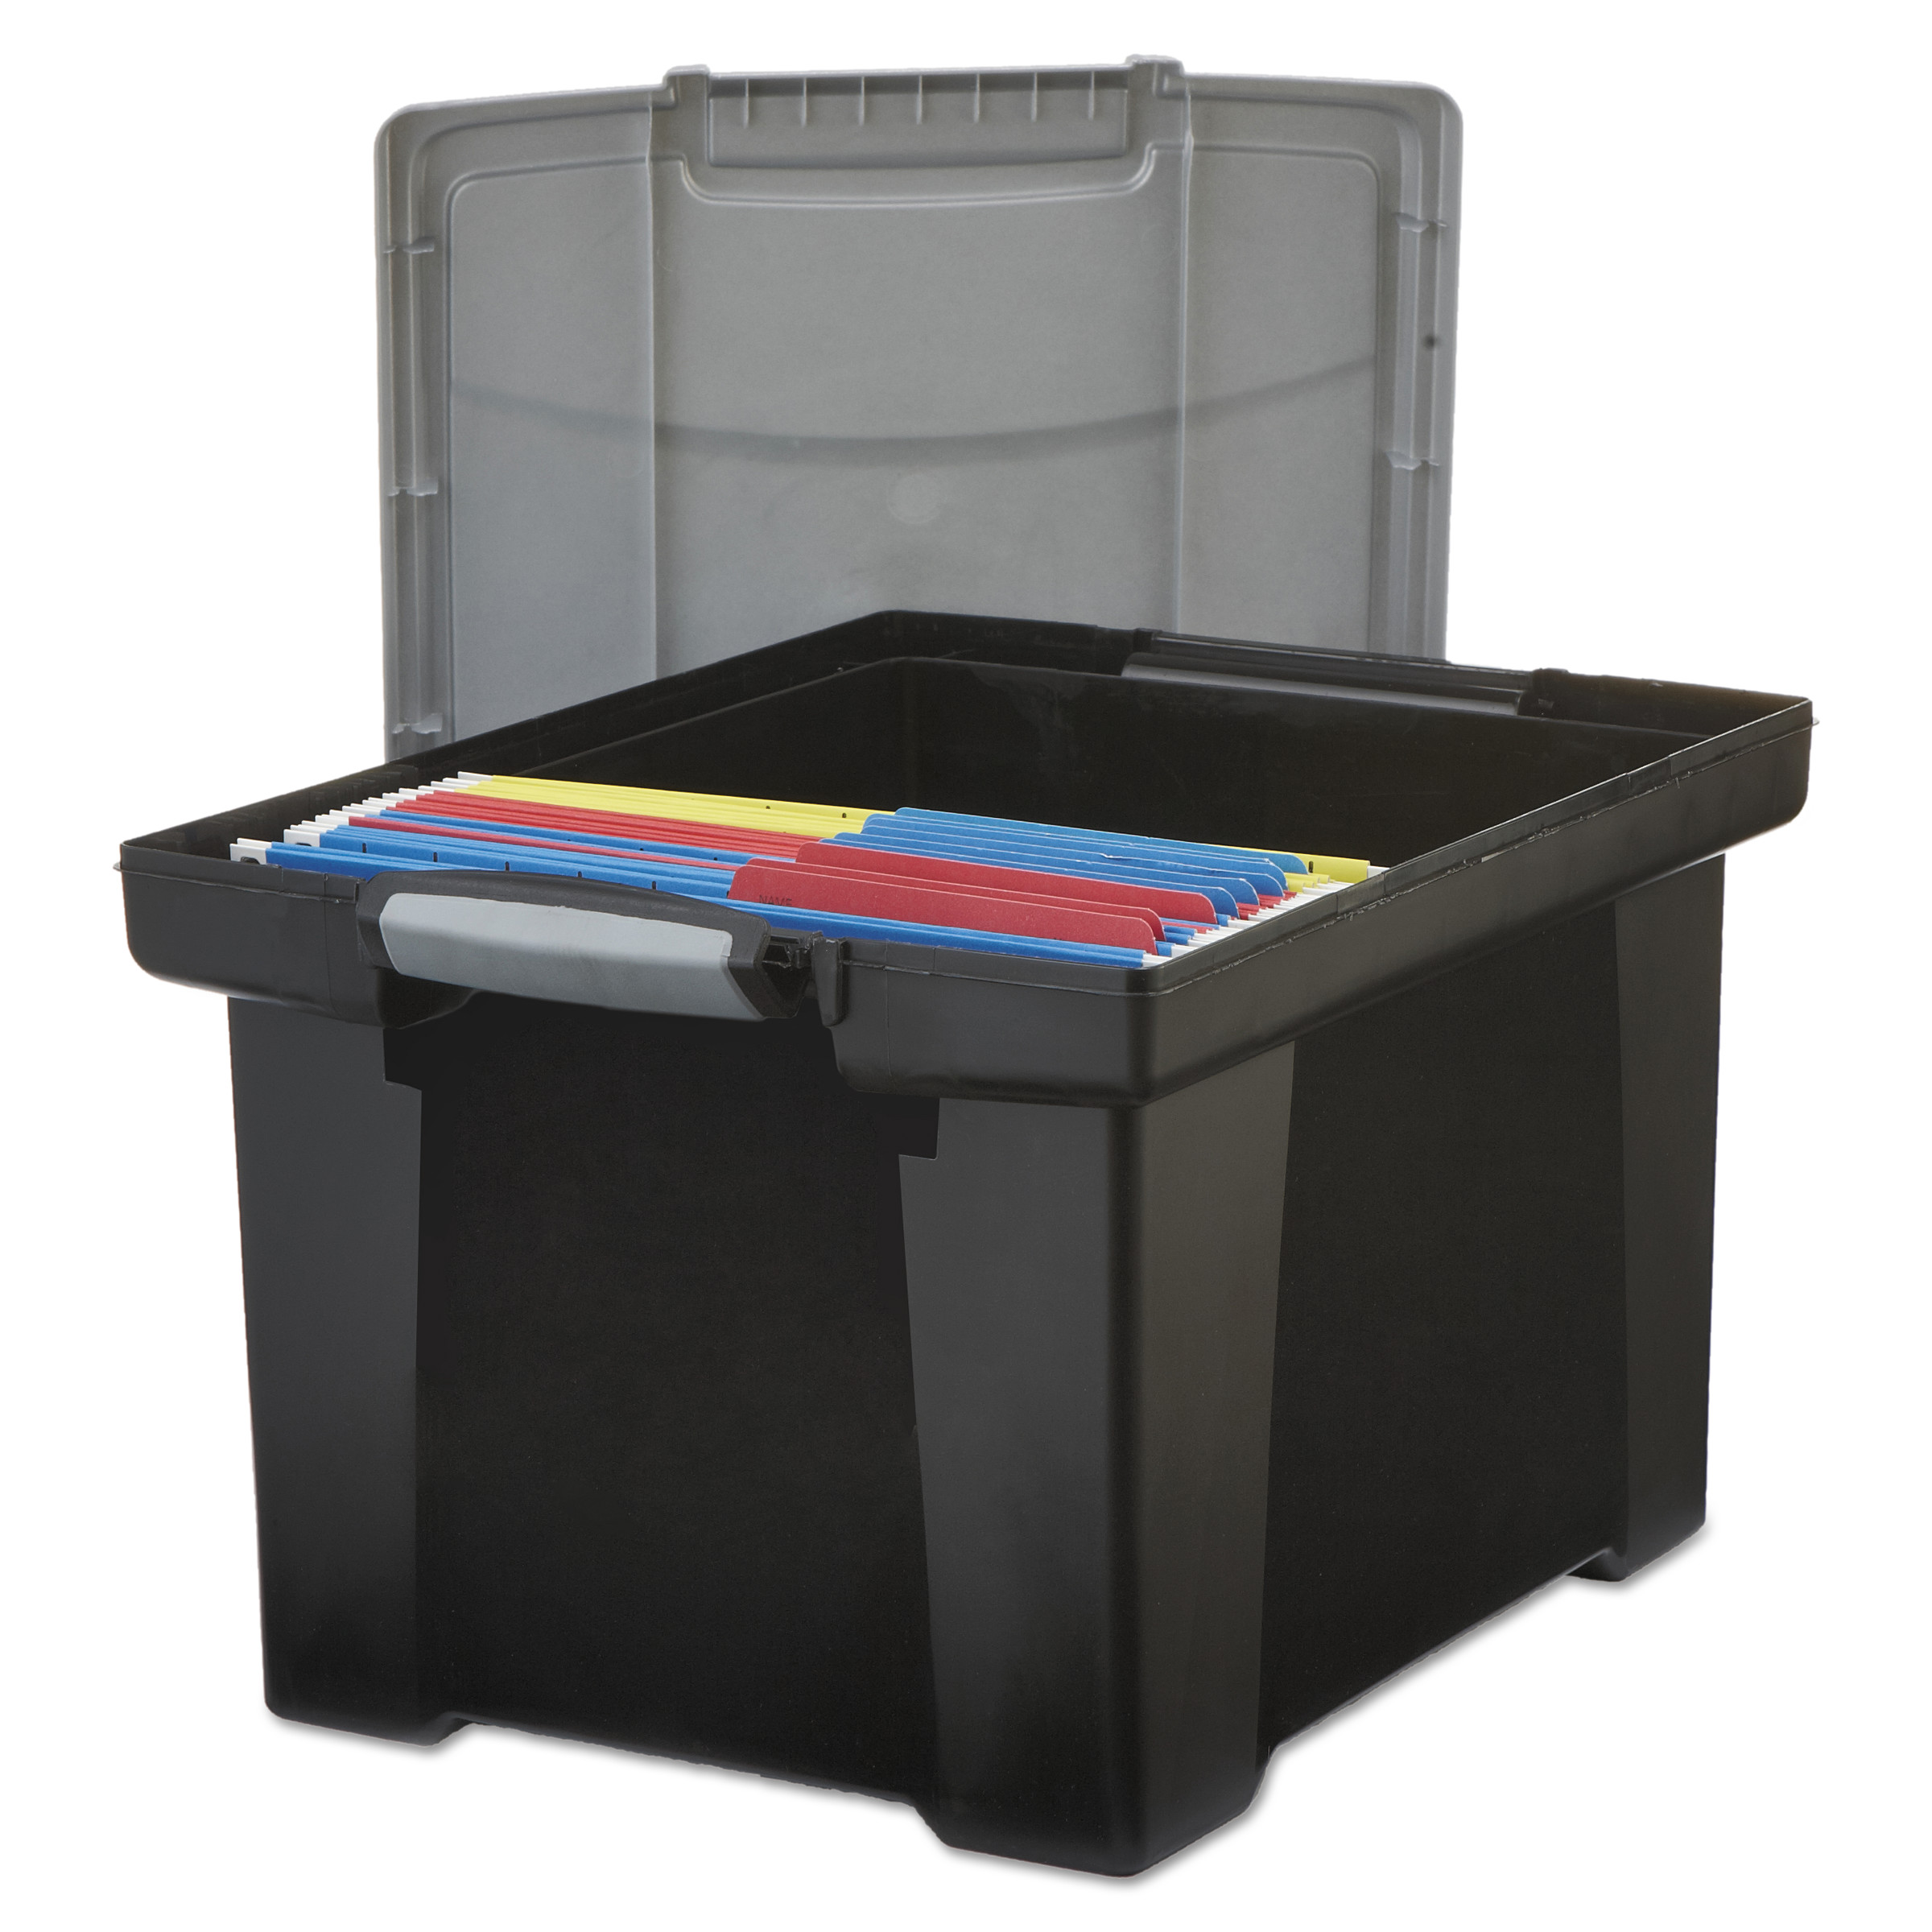 Storex Portable File Tote w/Locking Handle Storage Box, Letter/Legal, Black/Silver -STX61543U01C